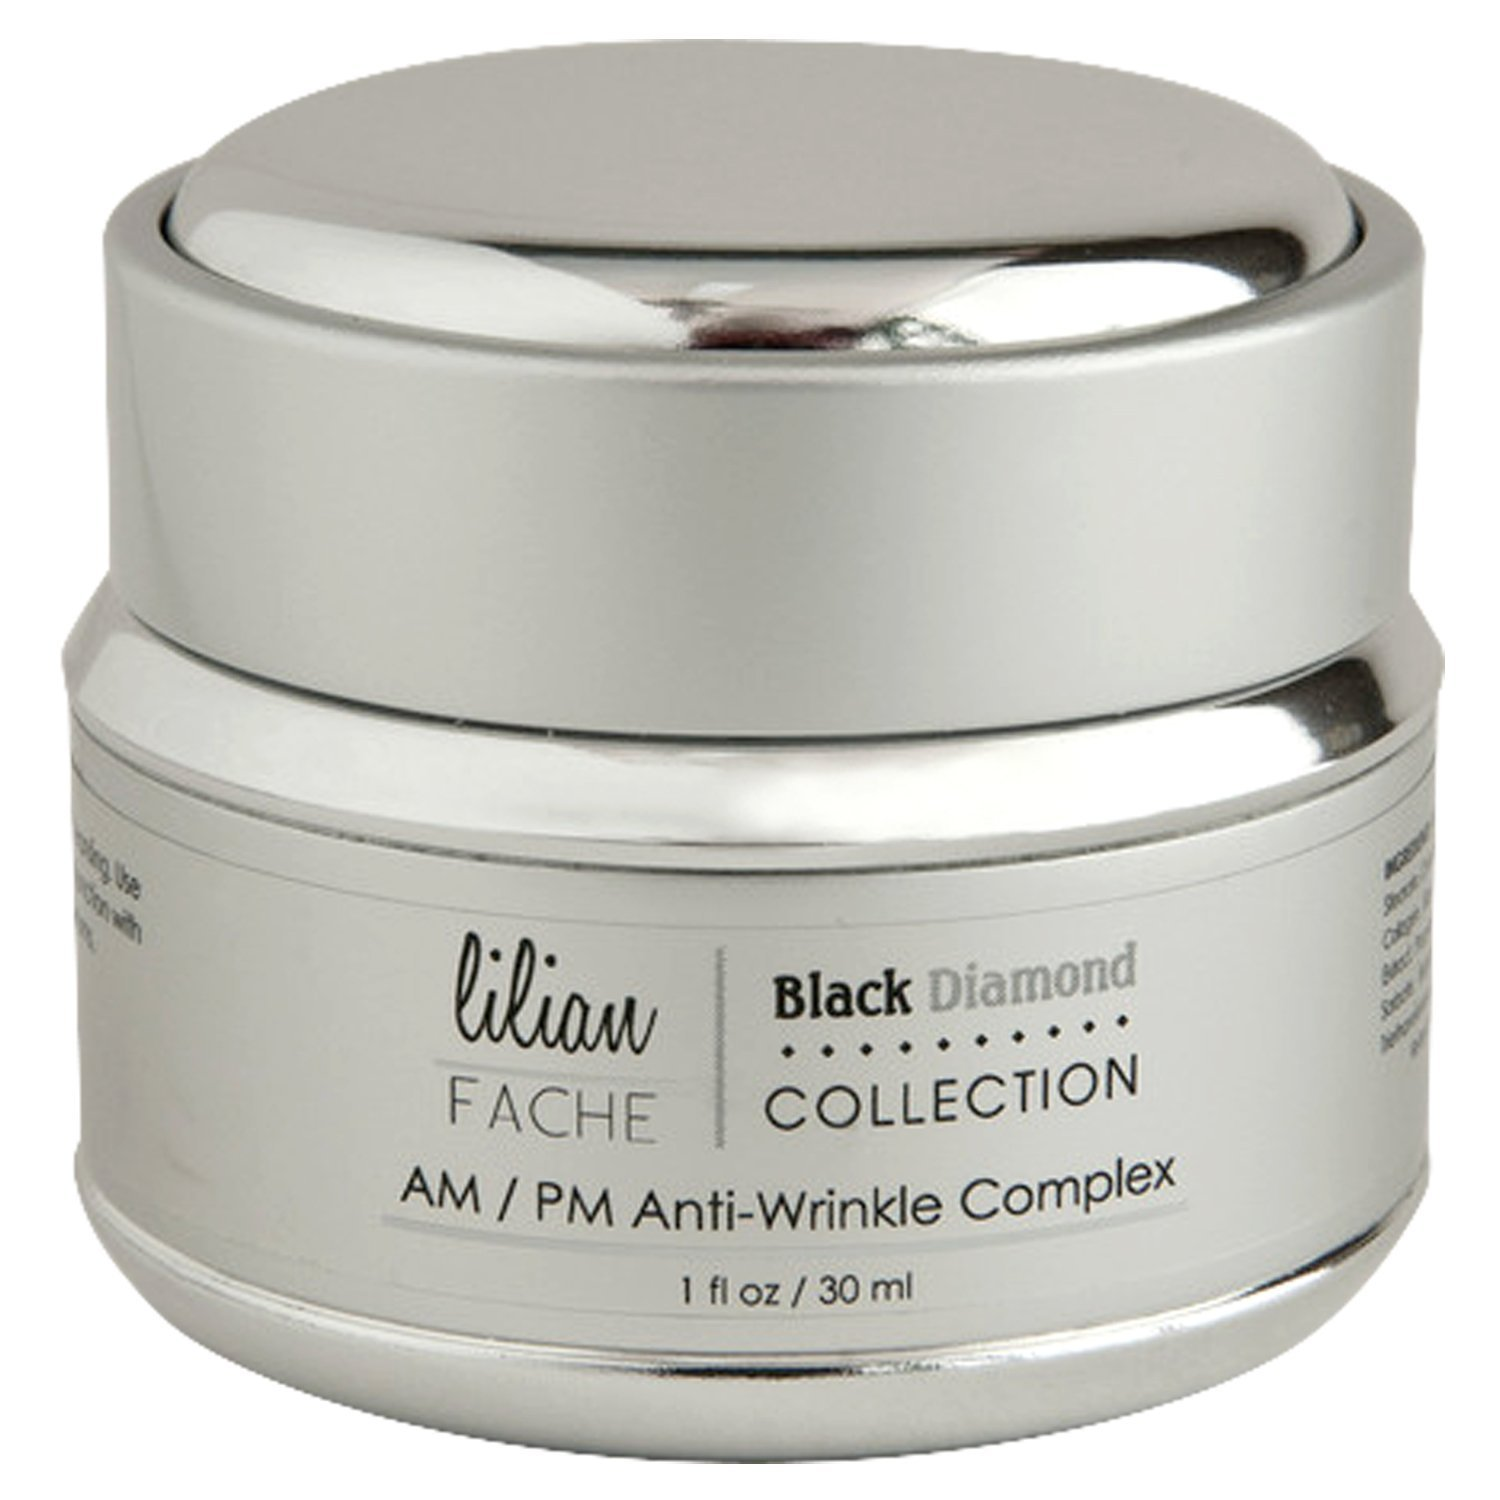 Amazon.com: AM/PM Face Moisturizer Anti-Aging Wrinkle Complex By Lilian Fache - Black Diamond Dust Infused - Skin Repair, Deep Wrinkle, Fine Line Correction ...